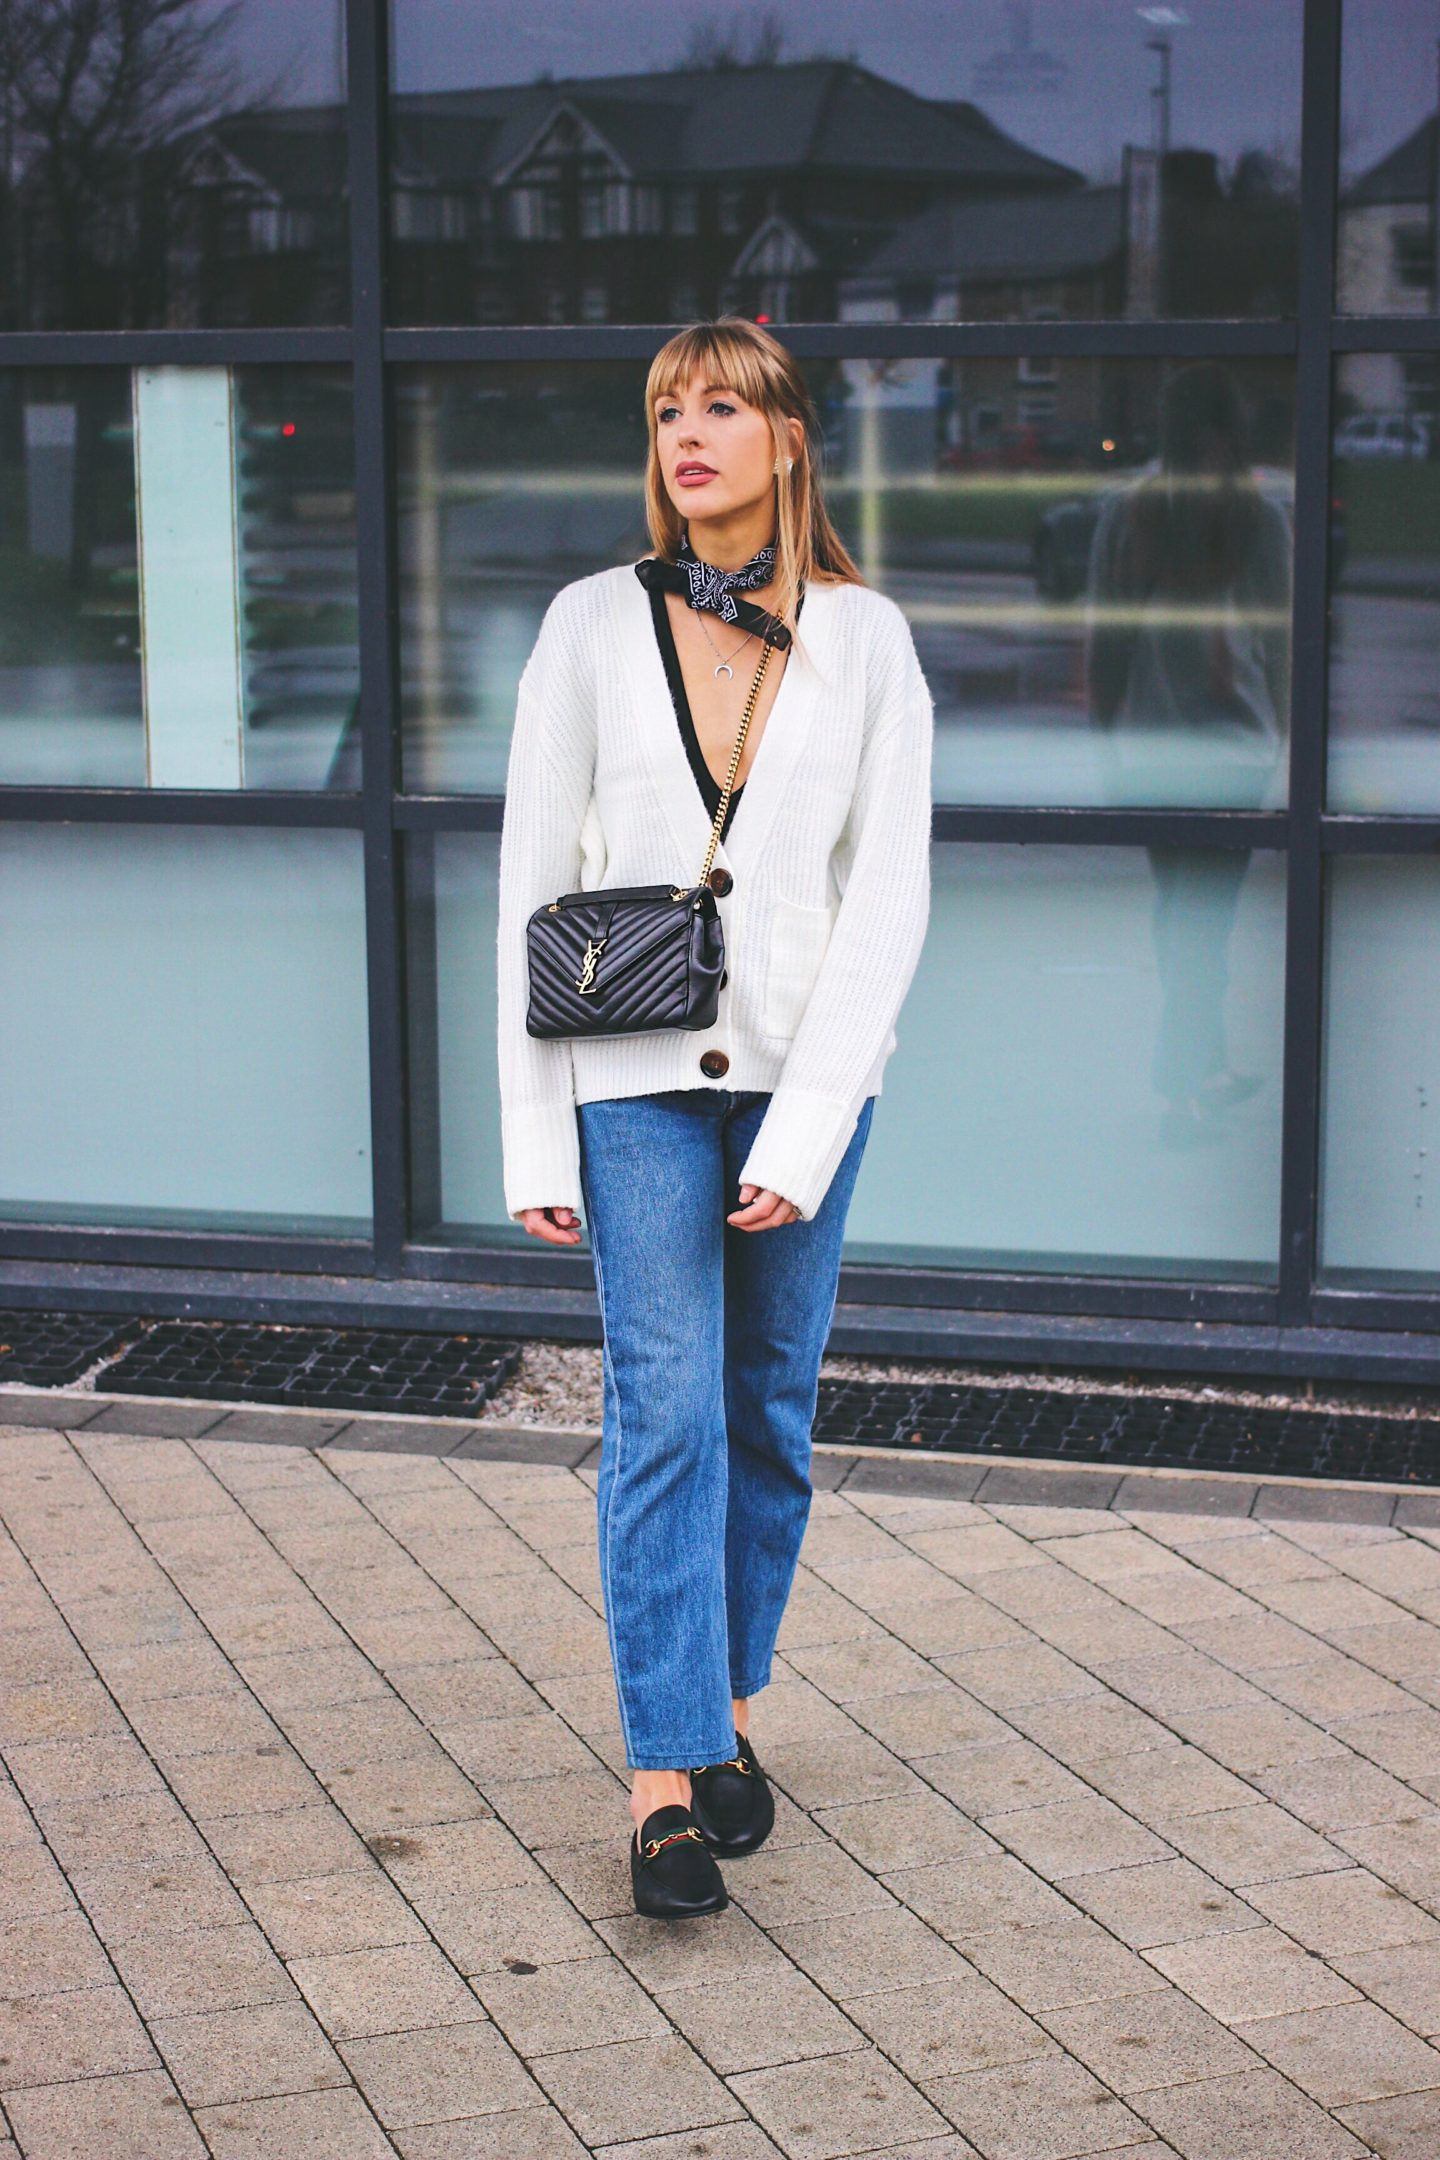 ways to wear jeans outfit ideas - Lurchhoundloves style blog Charlotte Buttrick